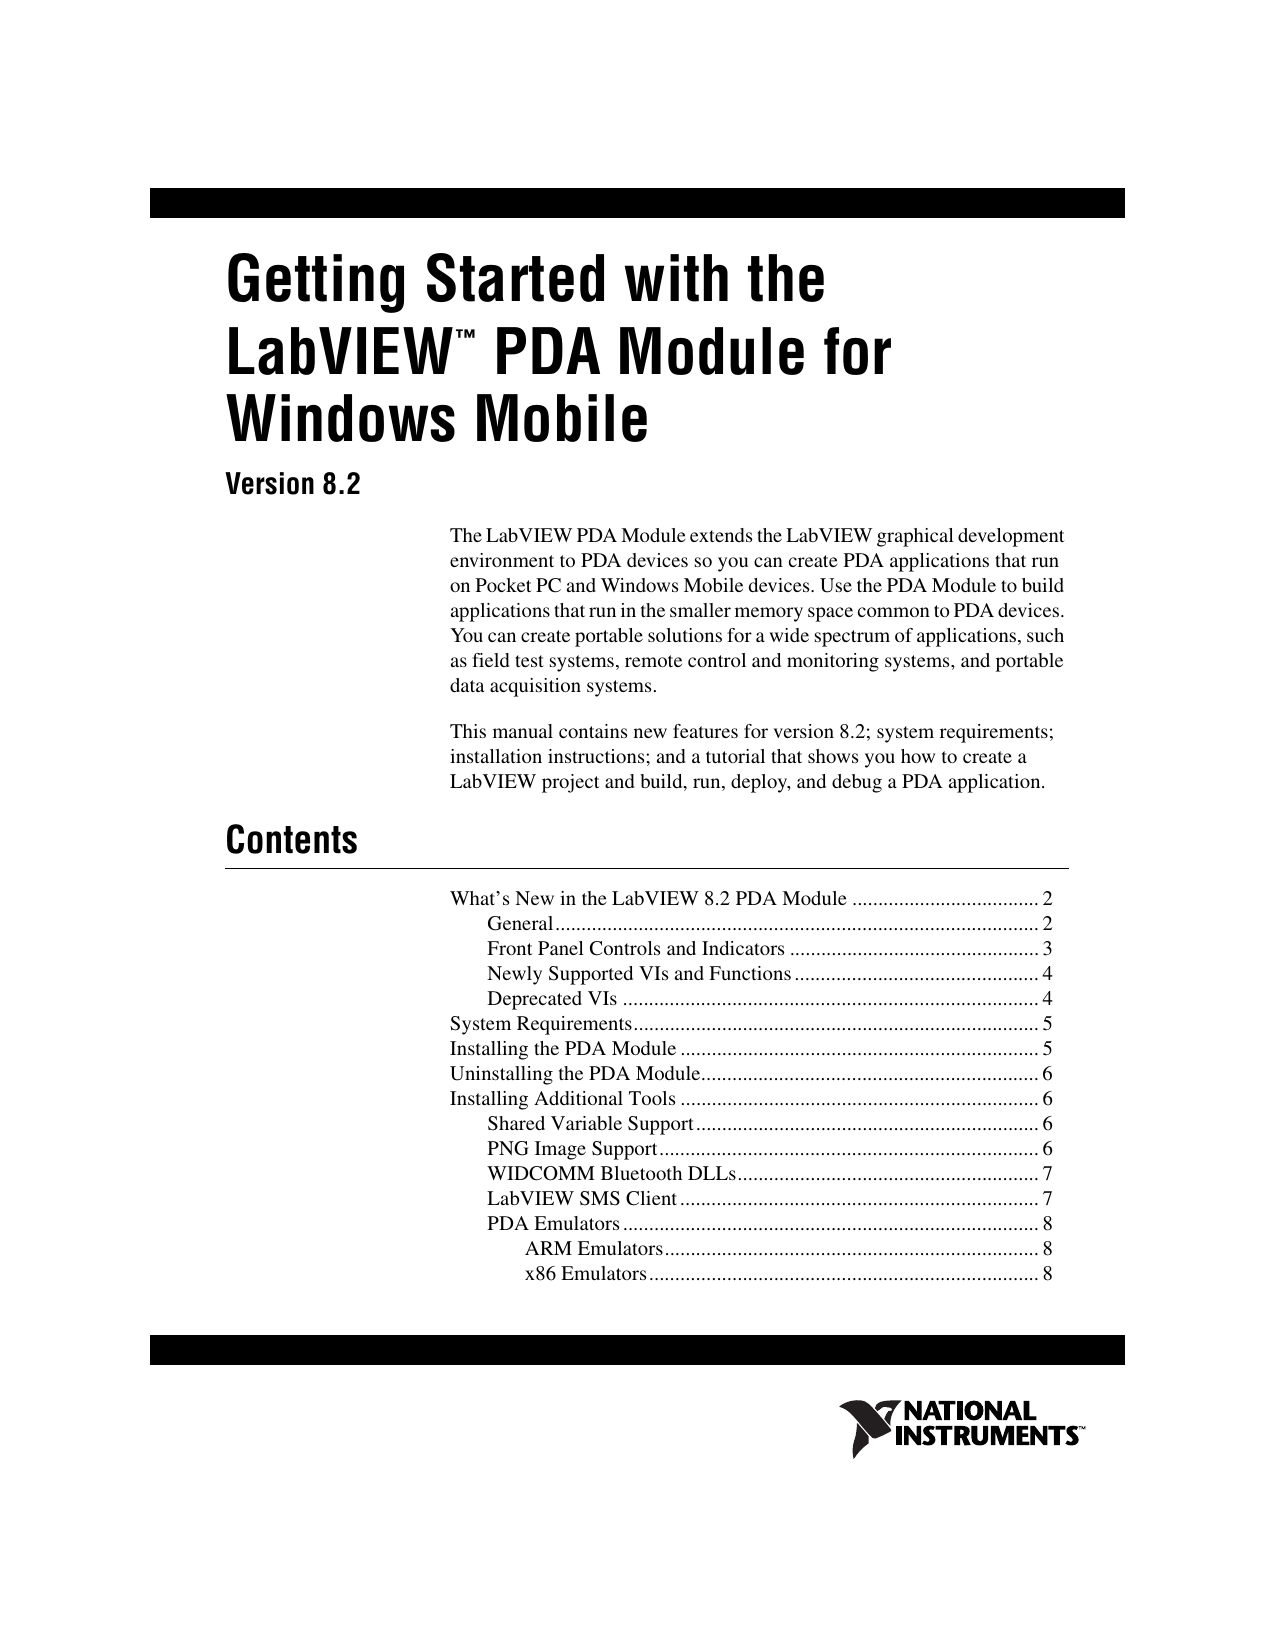 Getting Started with the LabVIEW PDA Module for Windows Mobile